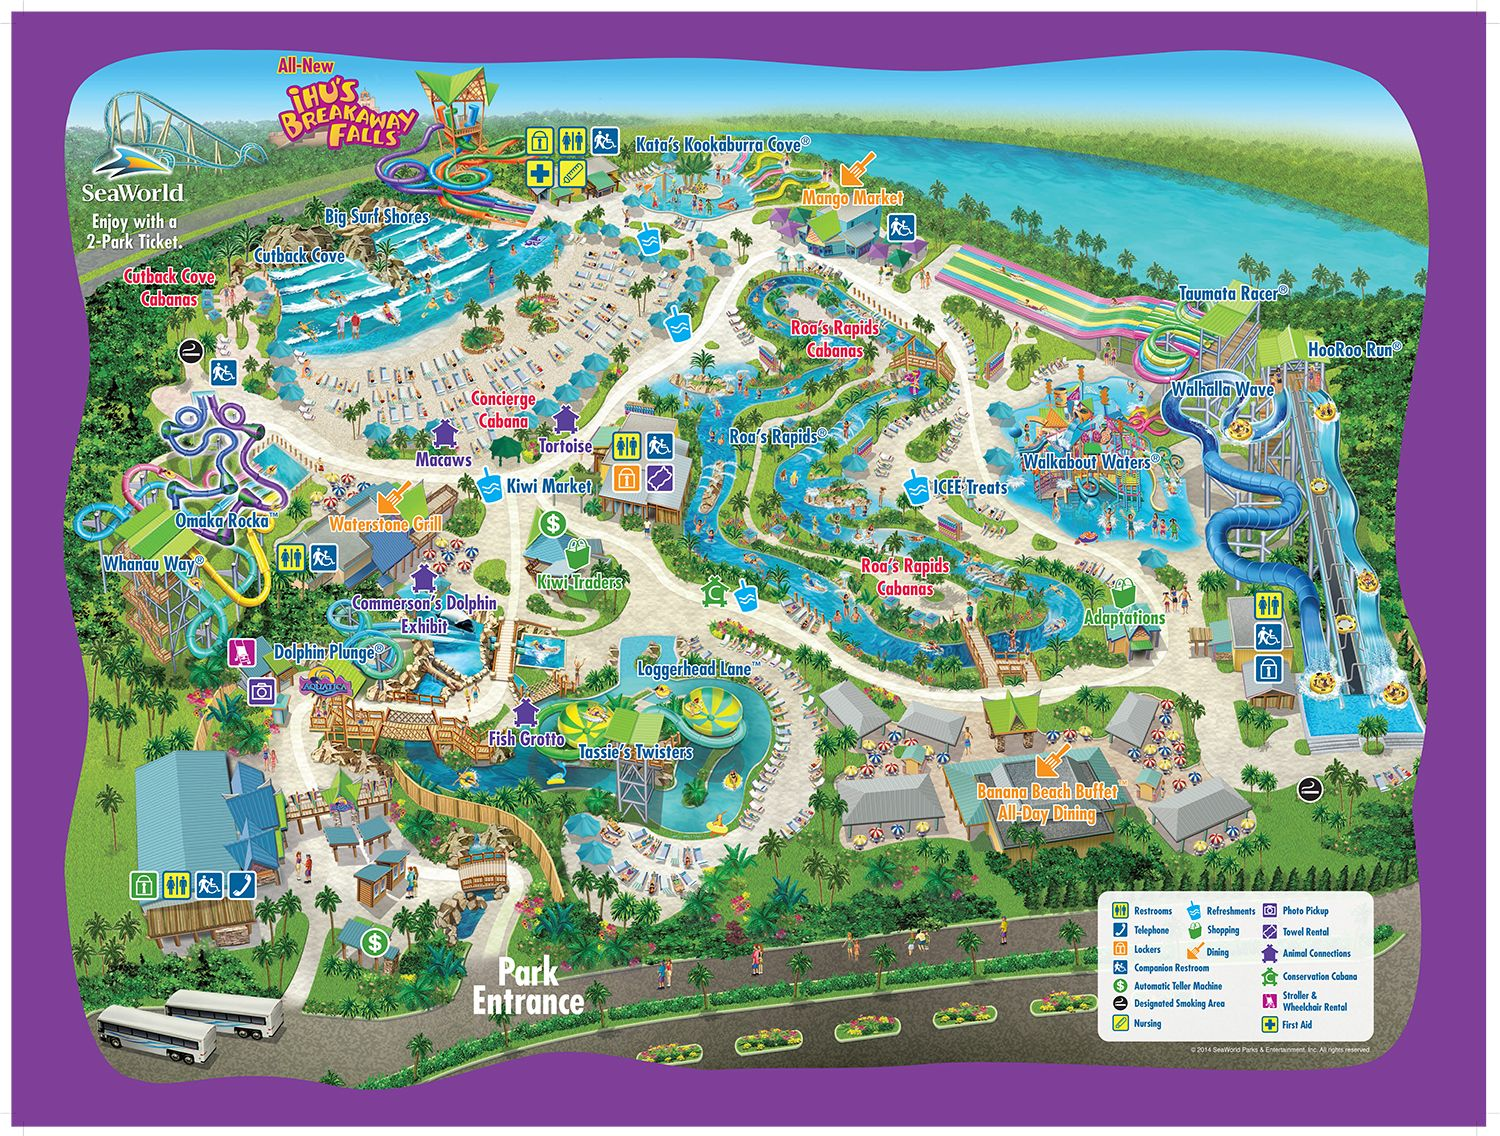 Aquatica Sea Worlds water park in Orlando FL A full day of water